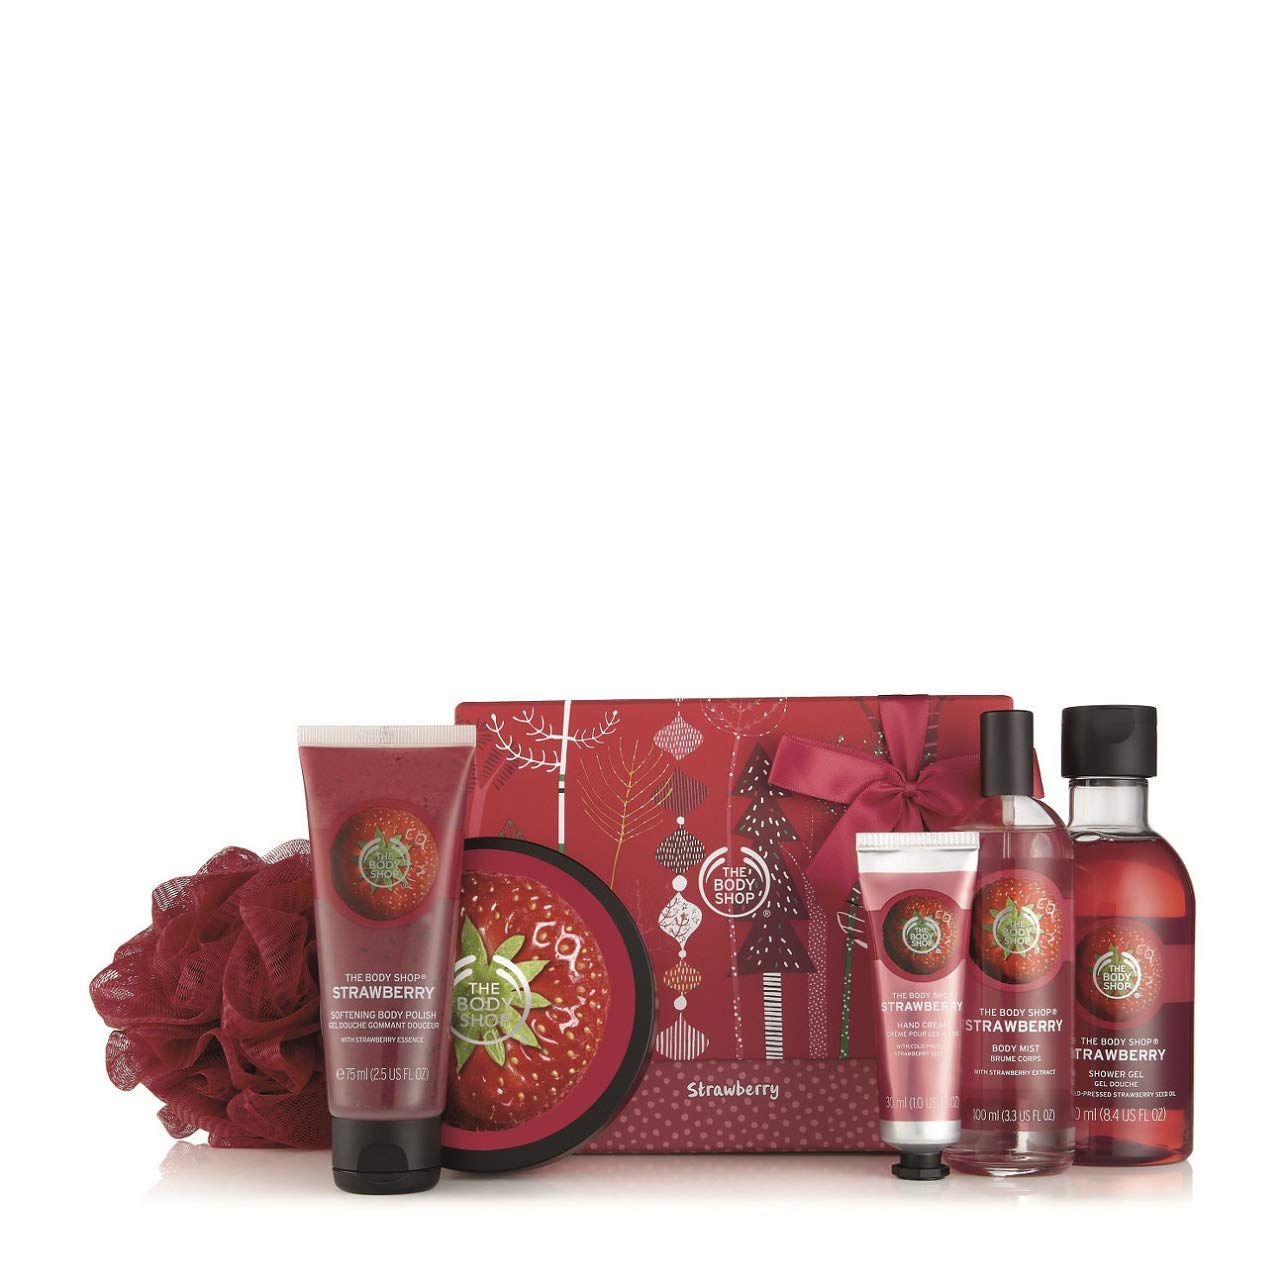 The Body Shop Mango Essential Selection Gift Set Buth-na-Bodhaige Inc d/b/a The Body Shop